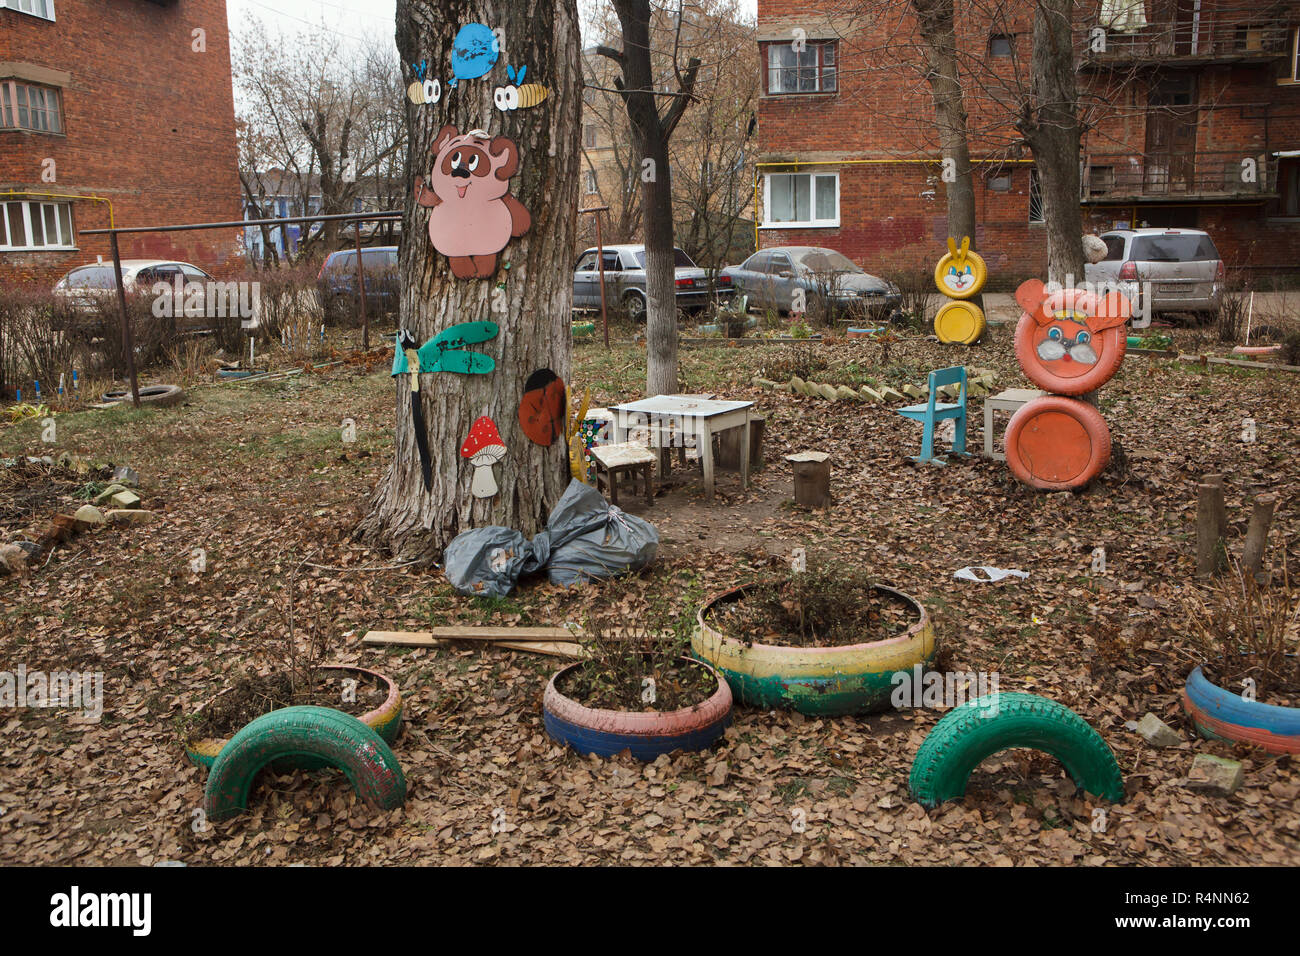 Child S Playground In Ivanovo Russia Winnie The Pooh And The Bees As They Appear In The Soviet Adaptation Are Depicted On The Tree Over The Dragonfly The Fly Agaric And The Ladybird The Yellow